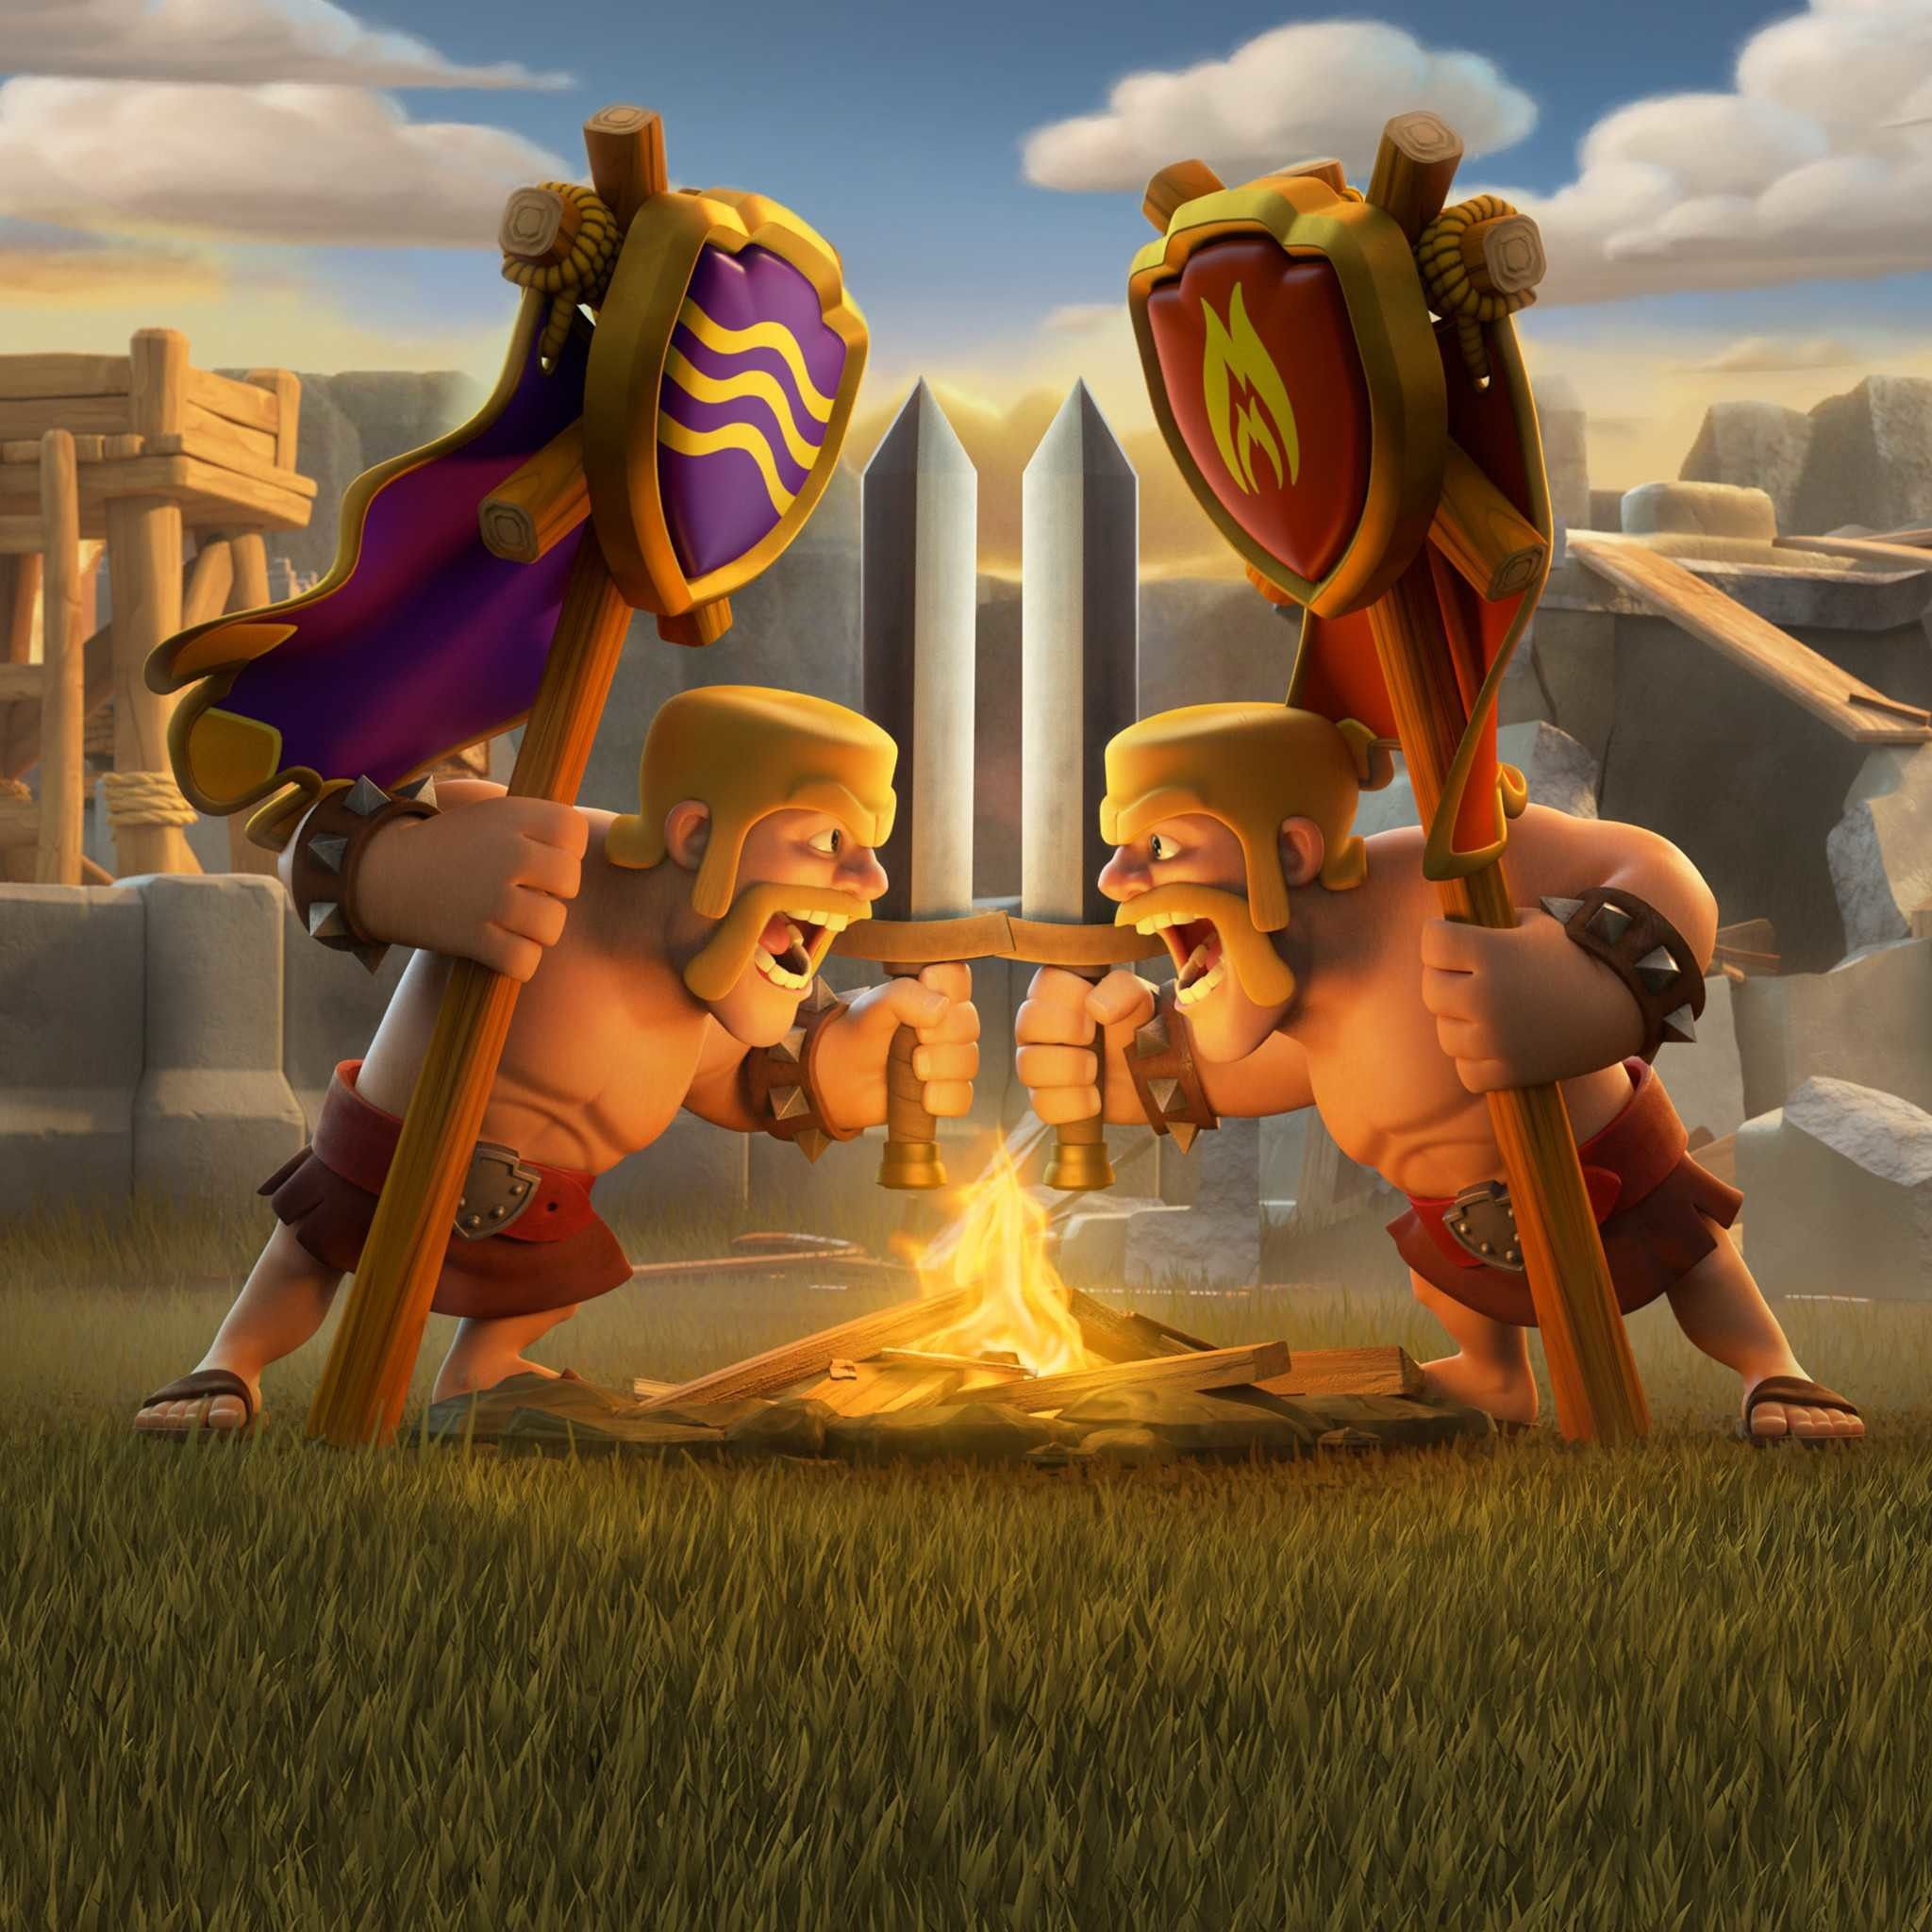 2048x2048 Clash Royale Wallpaper Barbarians Clash Of Clans Hack